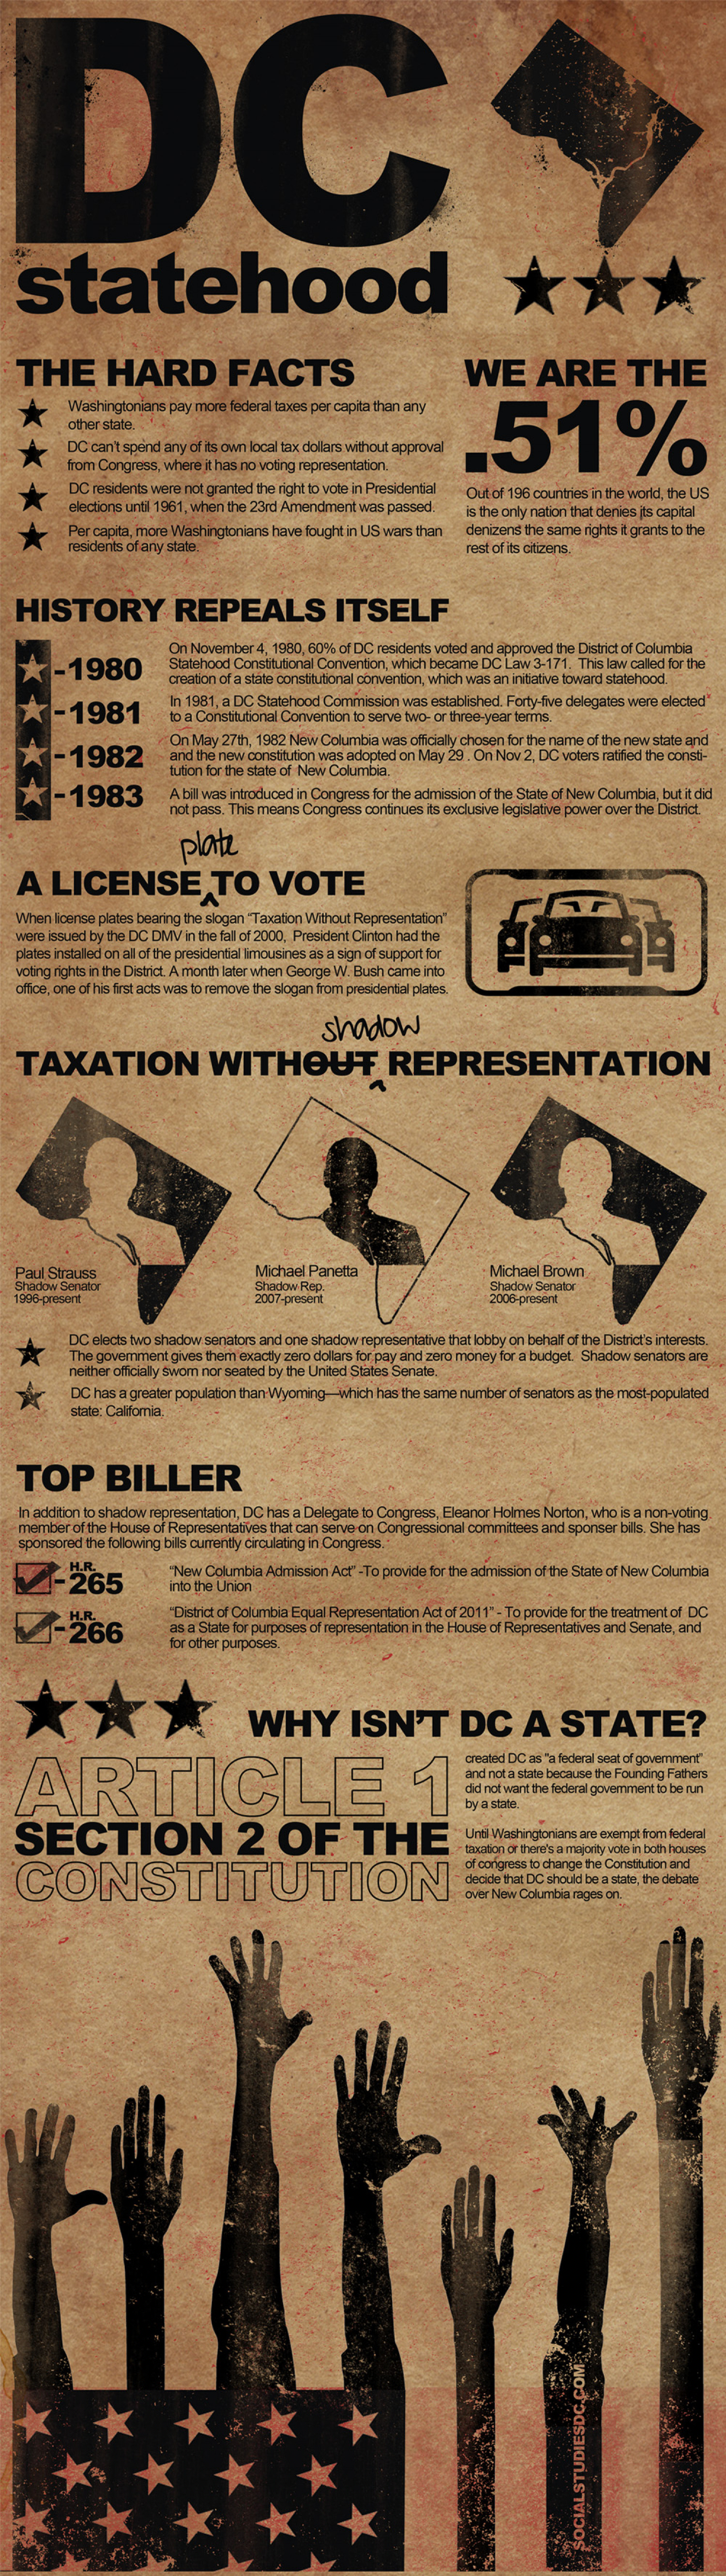 DC Statehood 101 Infographic